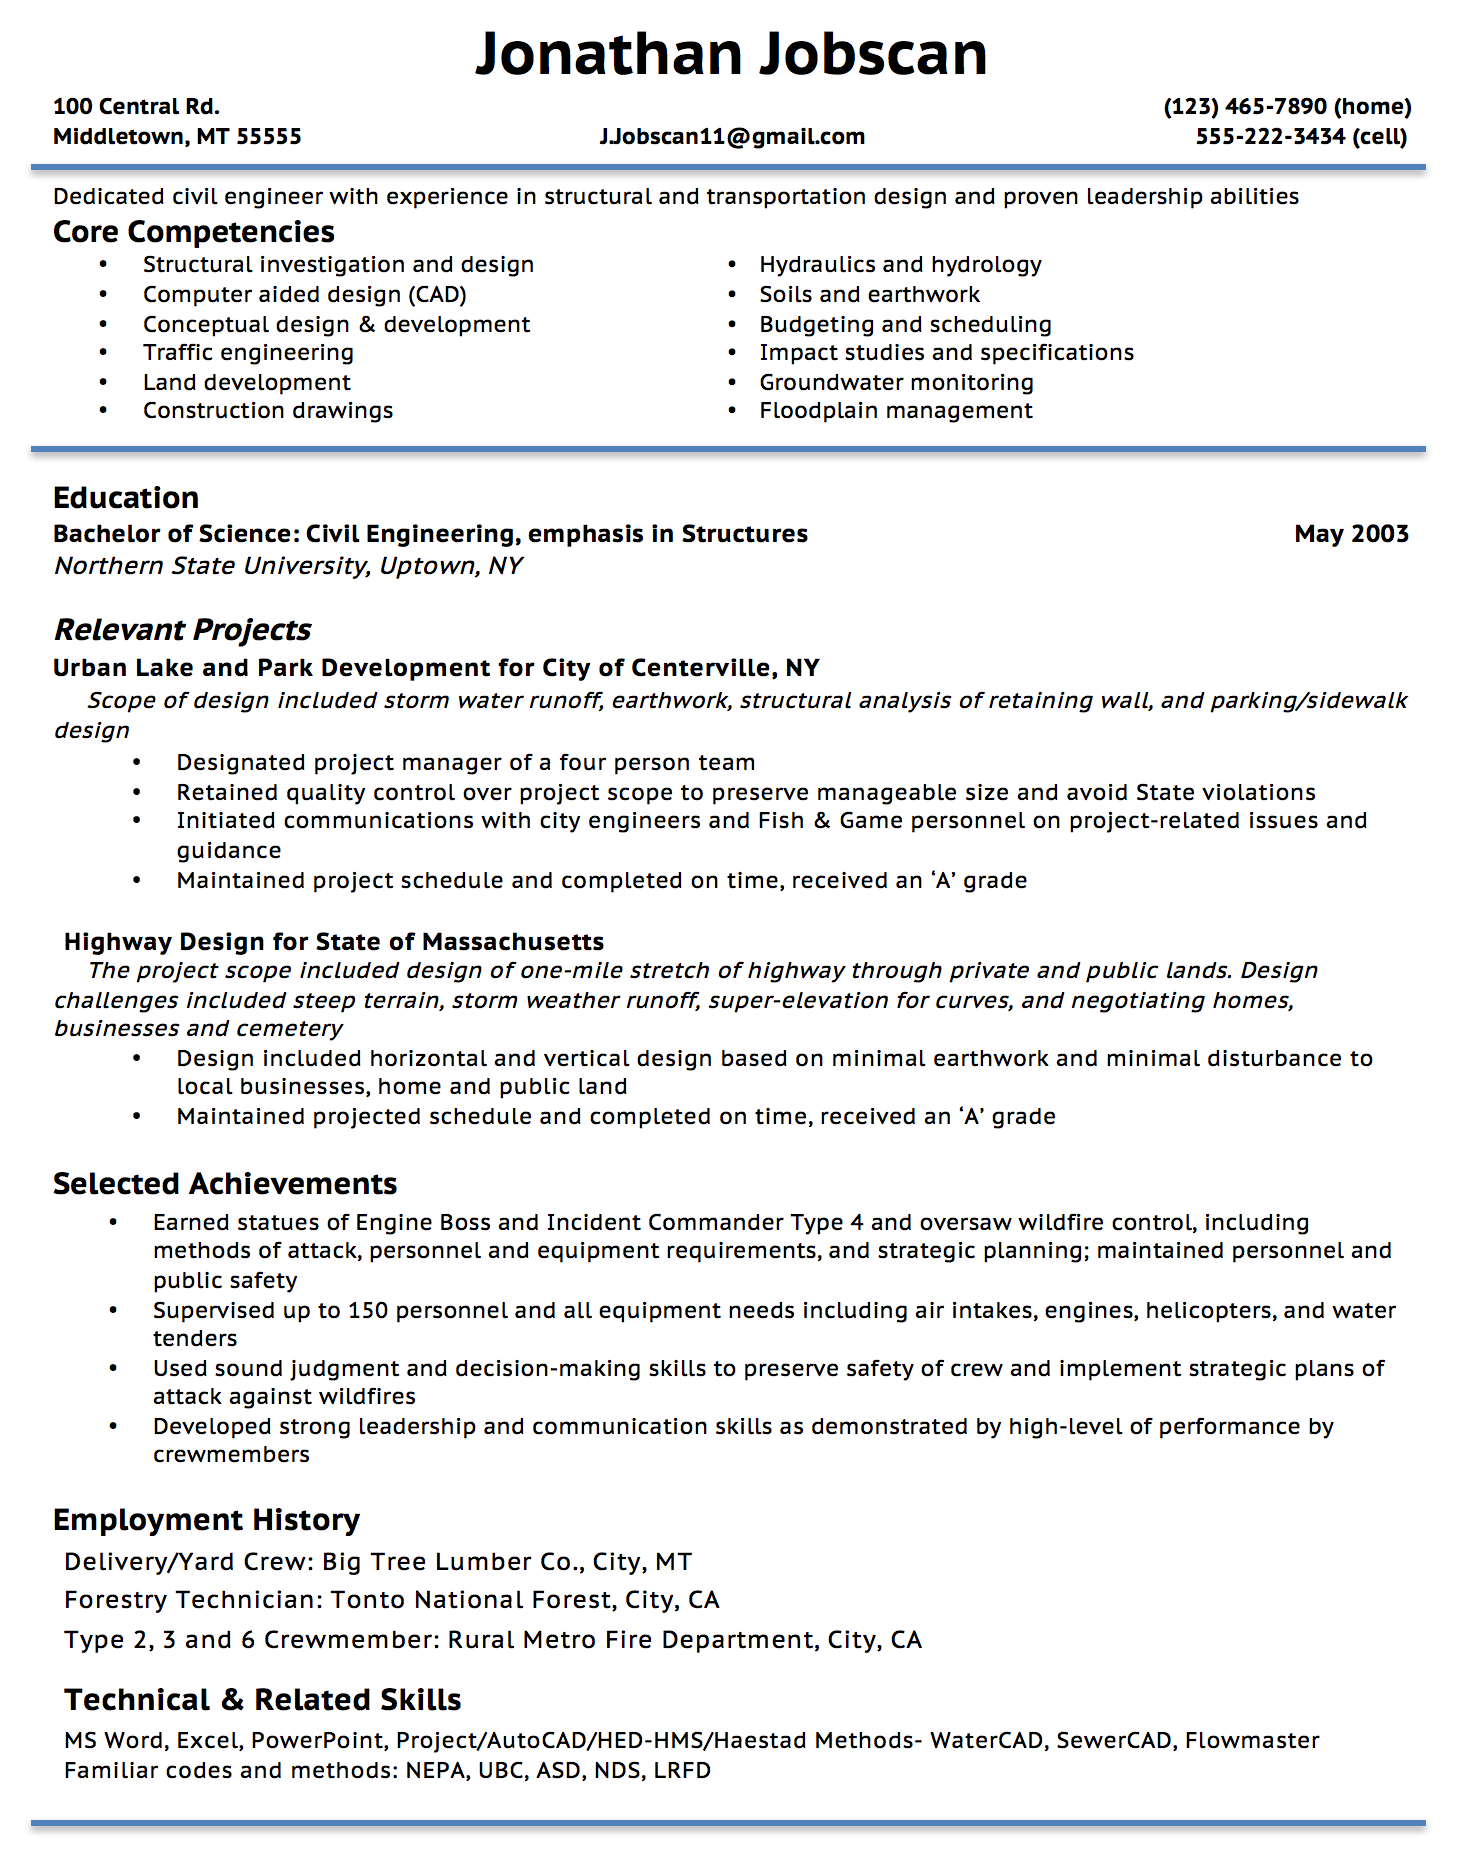 Opposenewapstandardsus  Fascinating Resume Writing Guide  Jobscan With Exciting Example Of A Functional Resume Format With Agreeable Computer Science Resume Also Resume Rabbit In Addition References On A Resume And Free Resume Creator As Well As Resume Cover Page Additionally How To Resume From Jobscanco With Opposenewapstandardsus  Exciting Resume Writing Guide  Jobscan With Agreeable Example Of A Functional Resume Format And Fascinating Computer Science Resume Also Resume Rabbit In Addition References On A Resume From Jobscanco